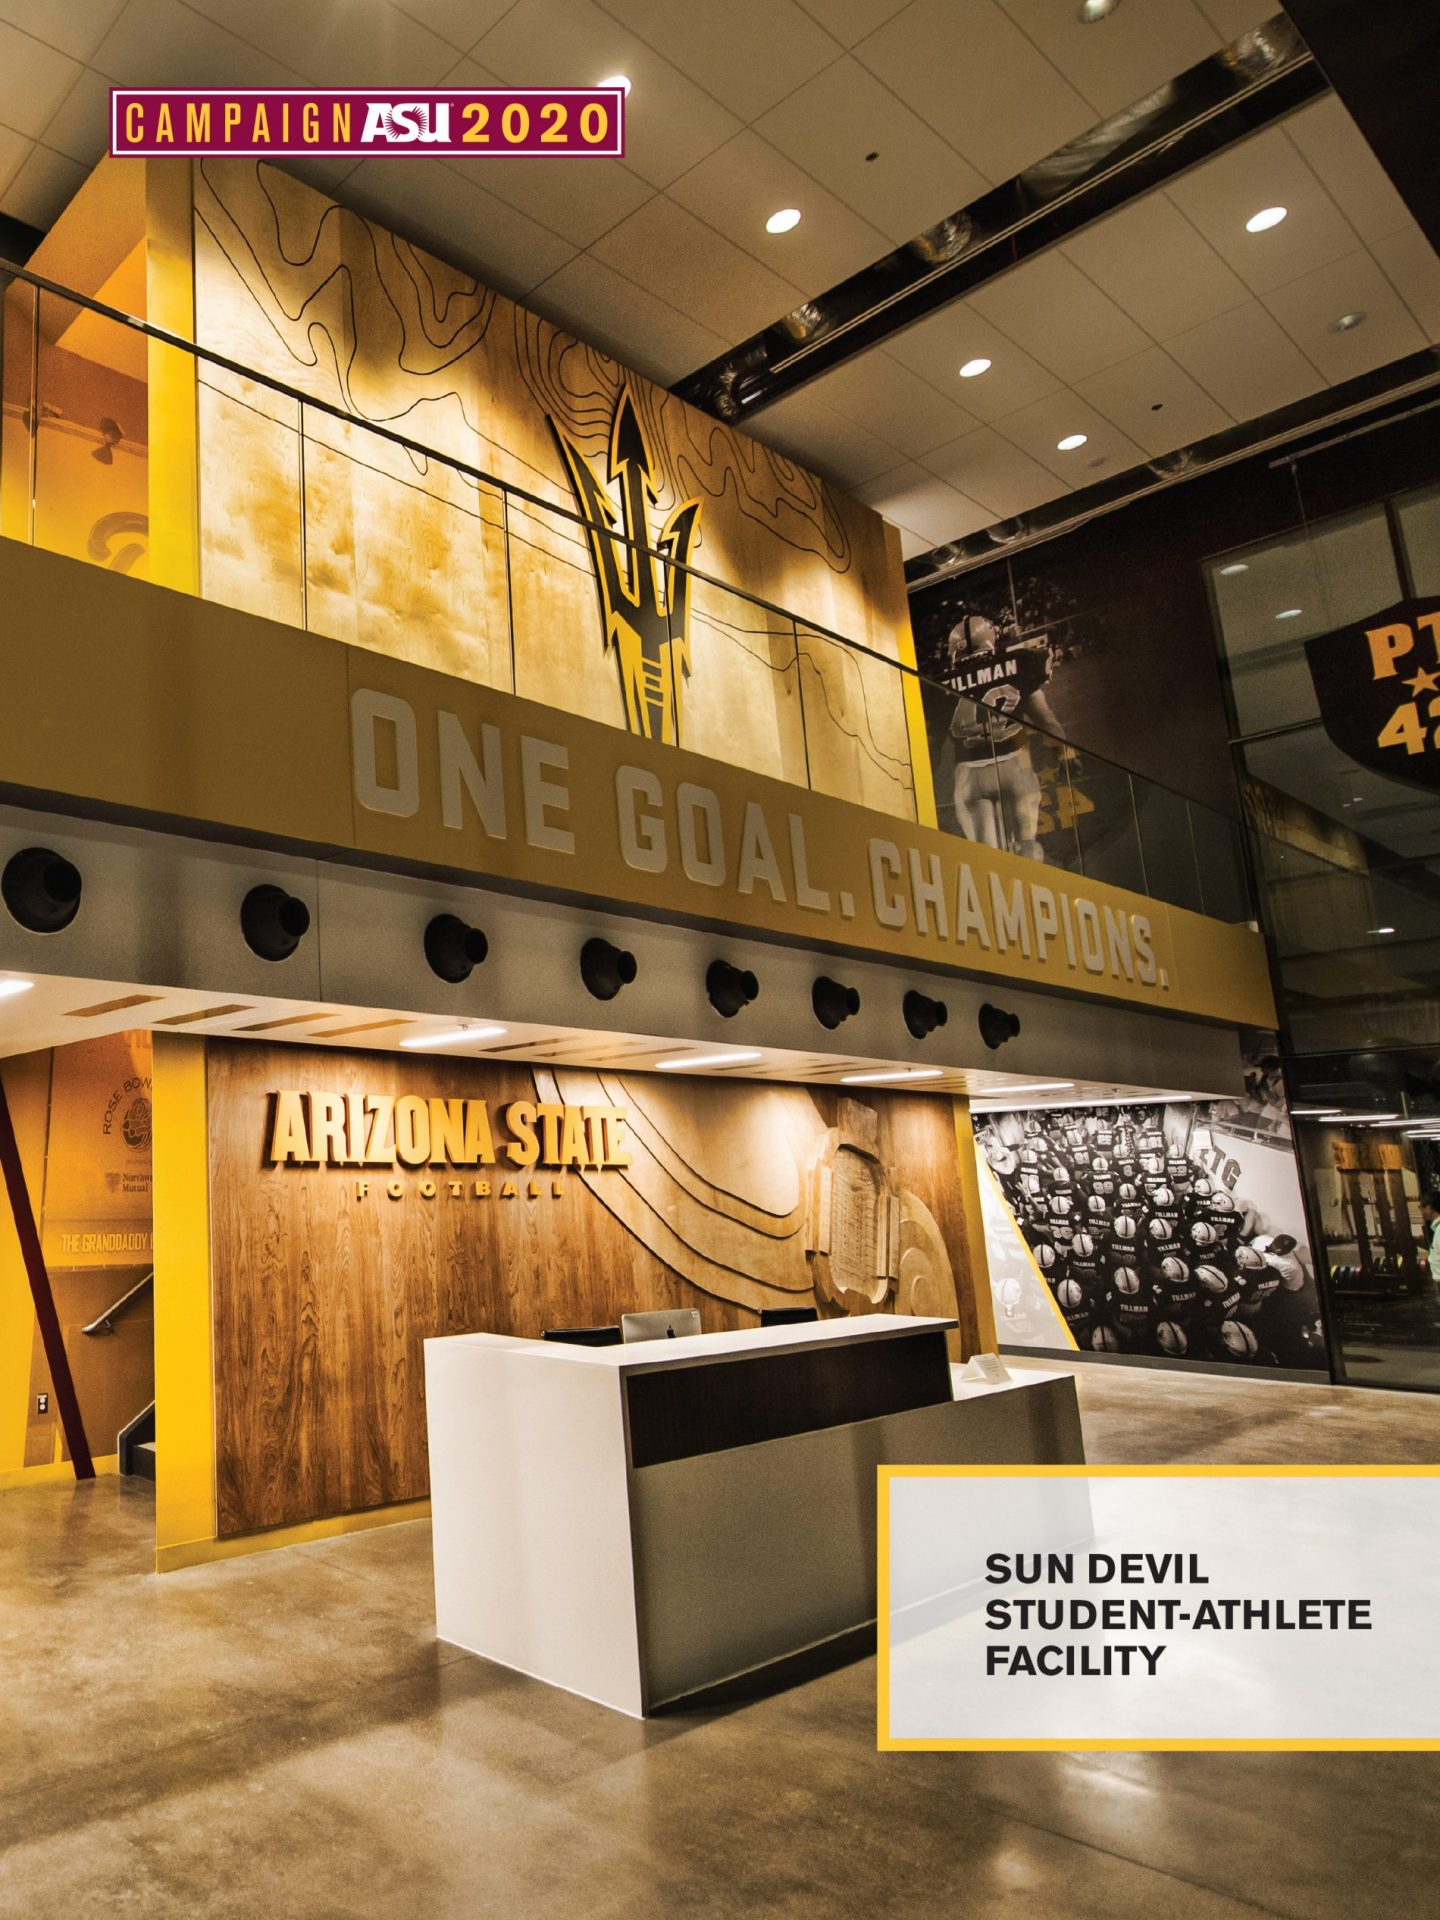 Sun Devil Student-Athlete Facility Case Statement